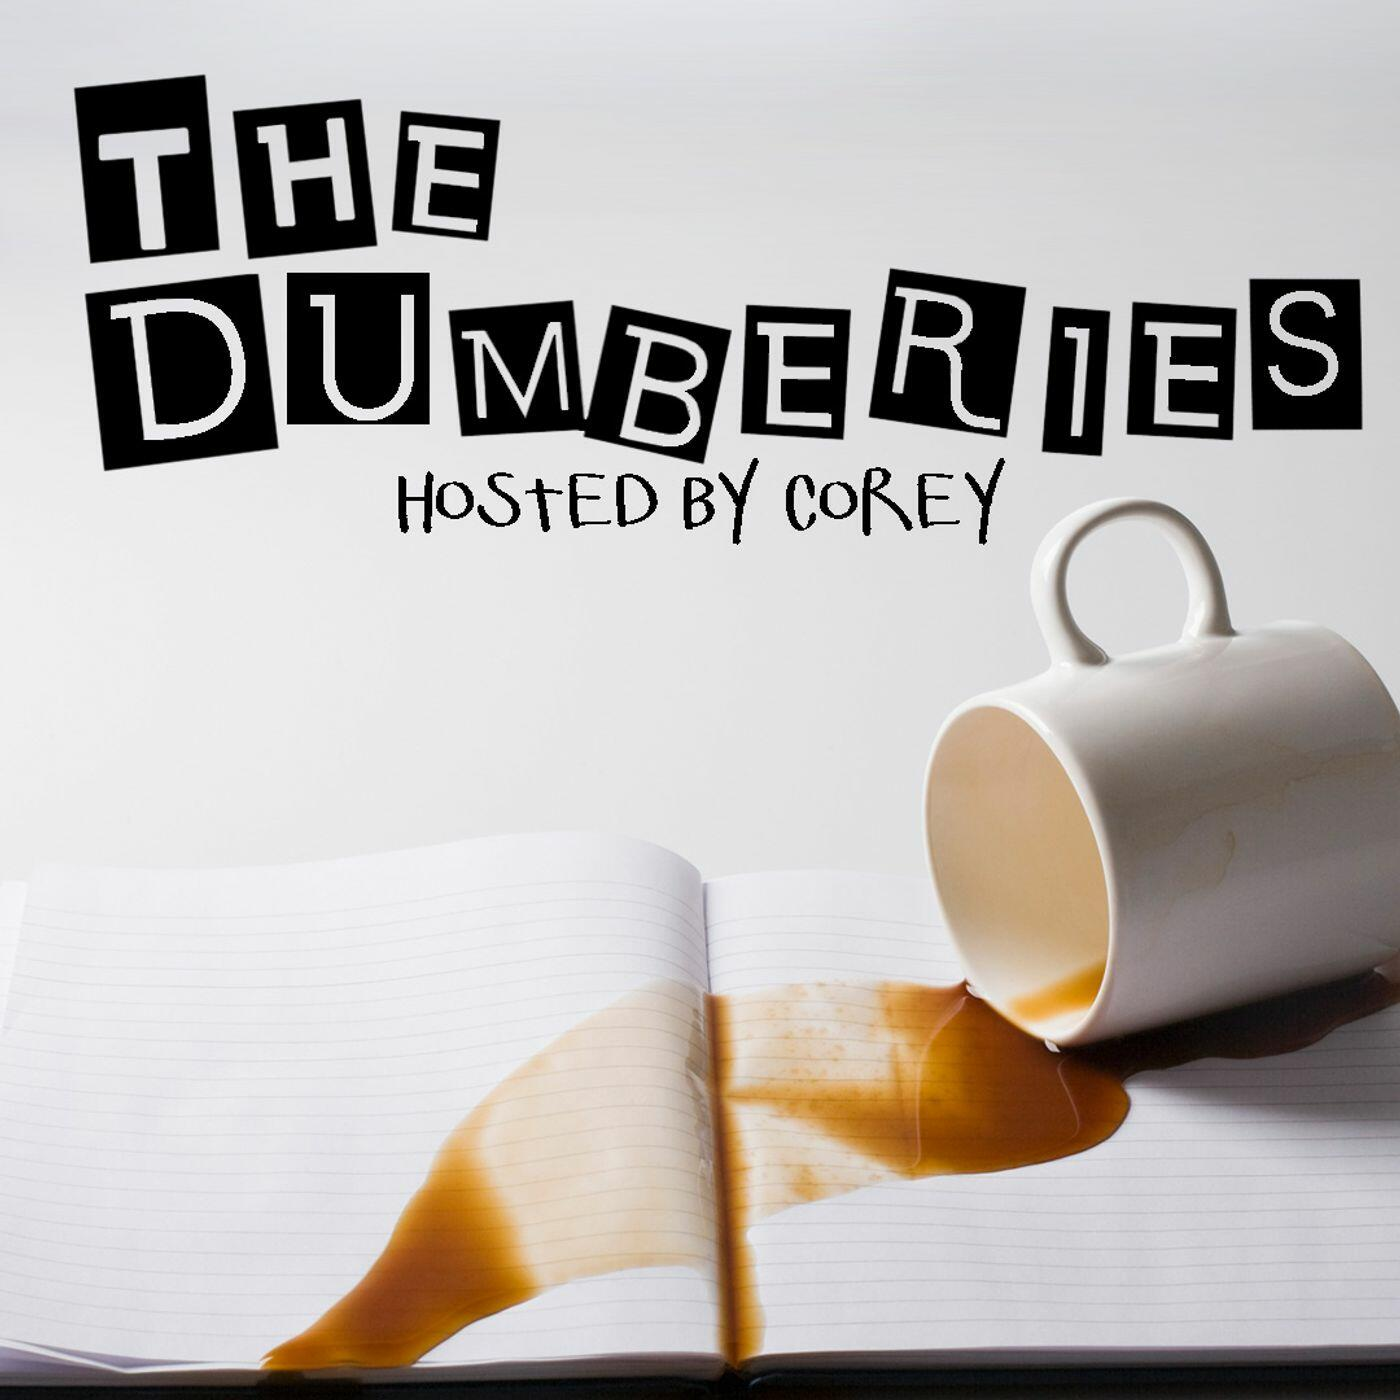 The Dumberies Hosted By Corey